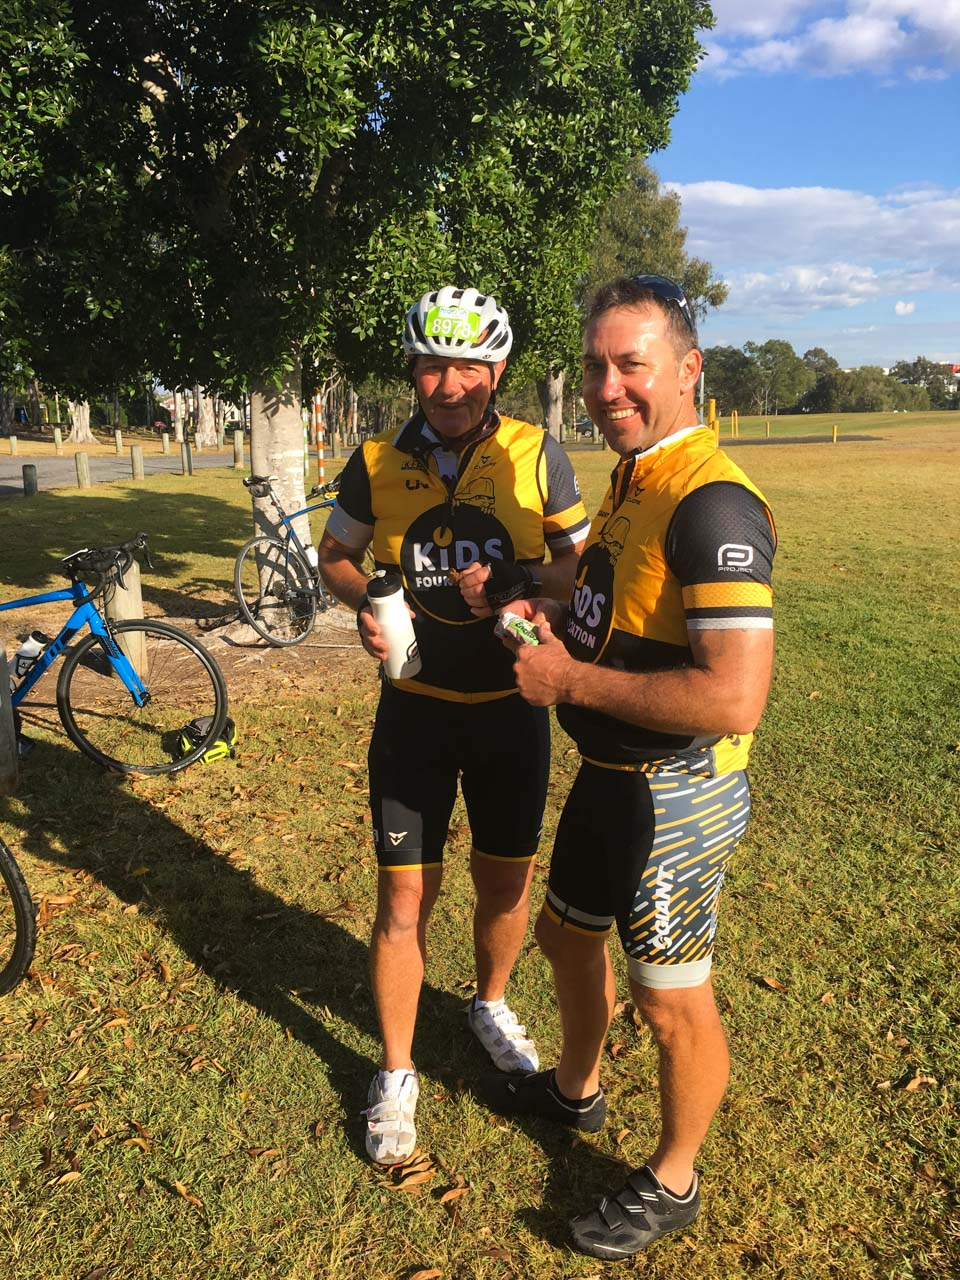 Scott Diete (right) pictured with another rider, Don McKill at a rest stop.